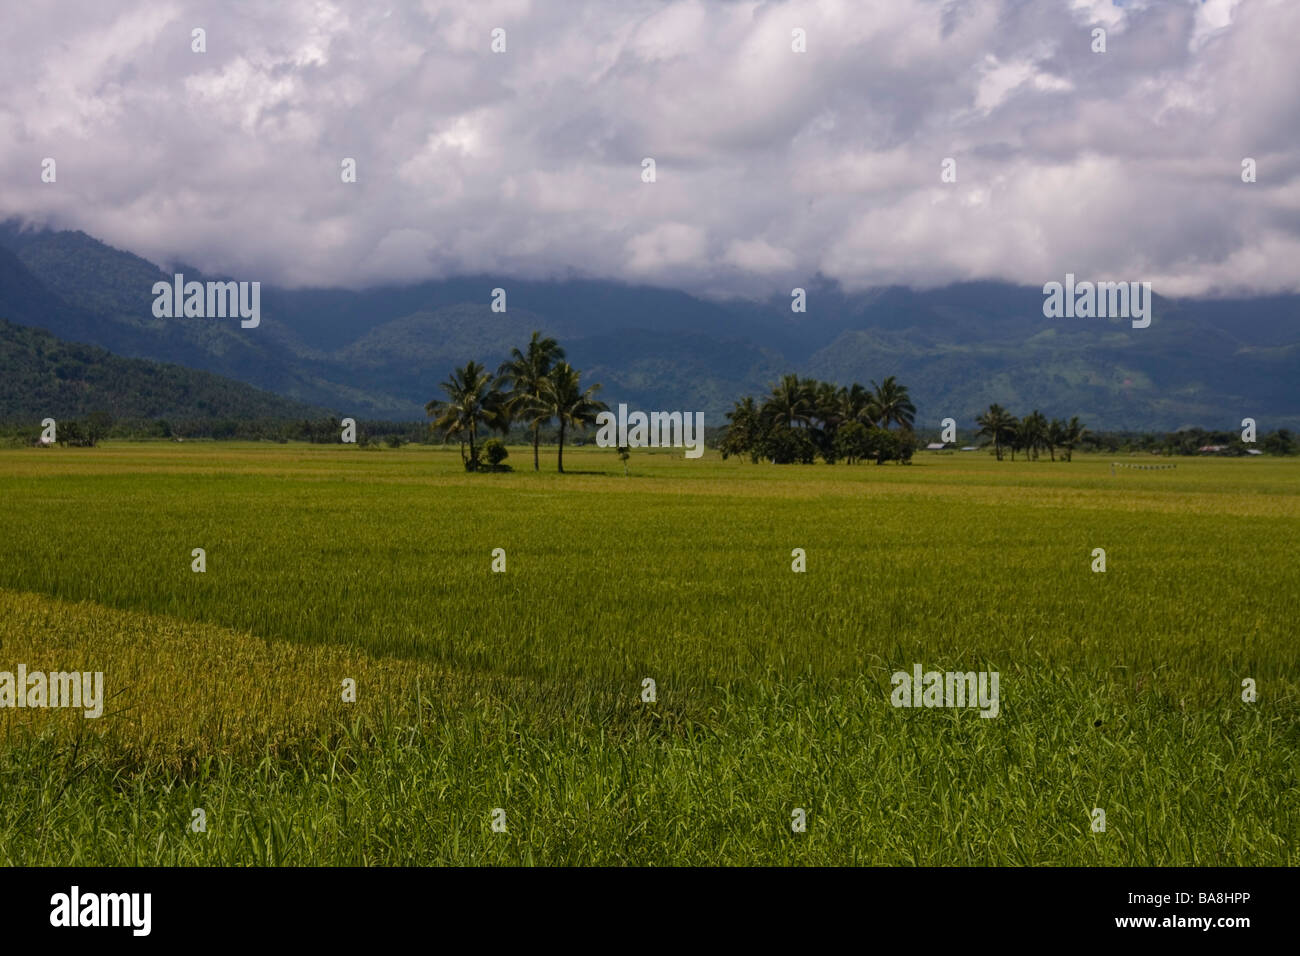 The rice field foregrounds the mountains. - Stock Image